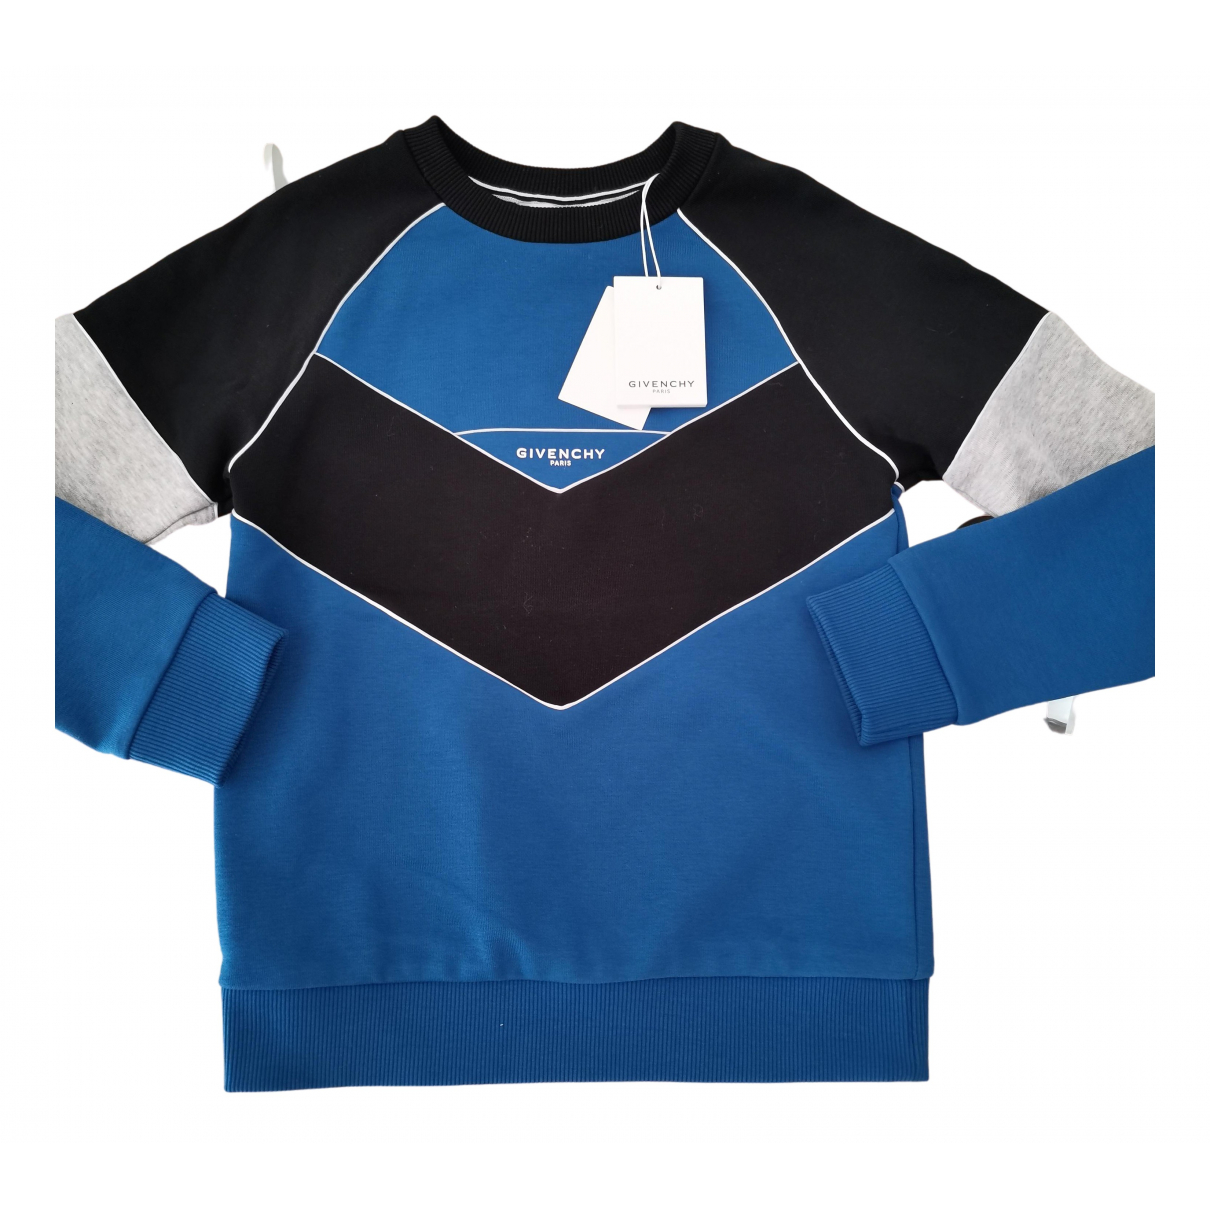 Givenchy N Multicolour Cotton Knitwear for Kids 8 years - up to 128cm FR